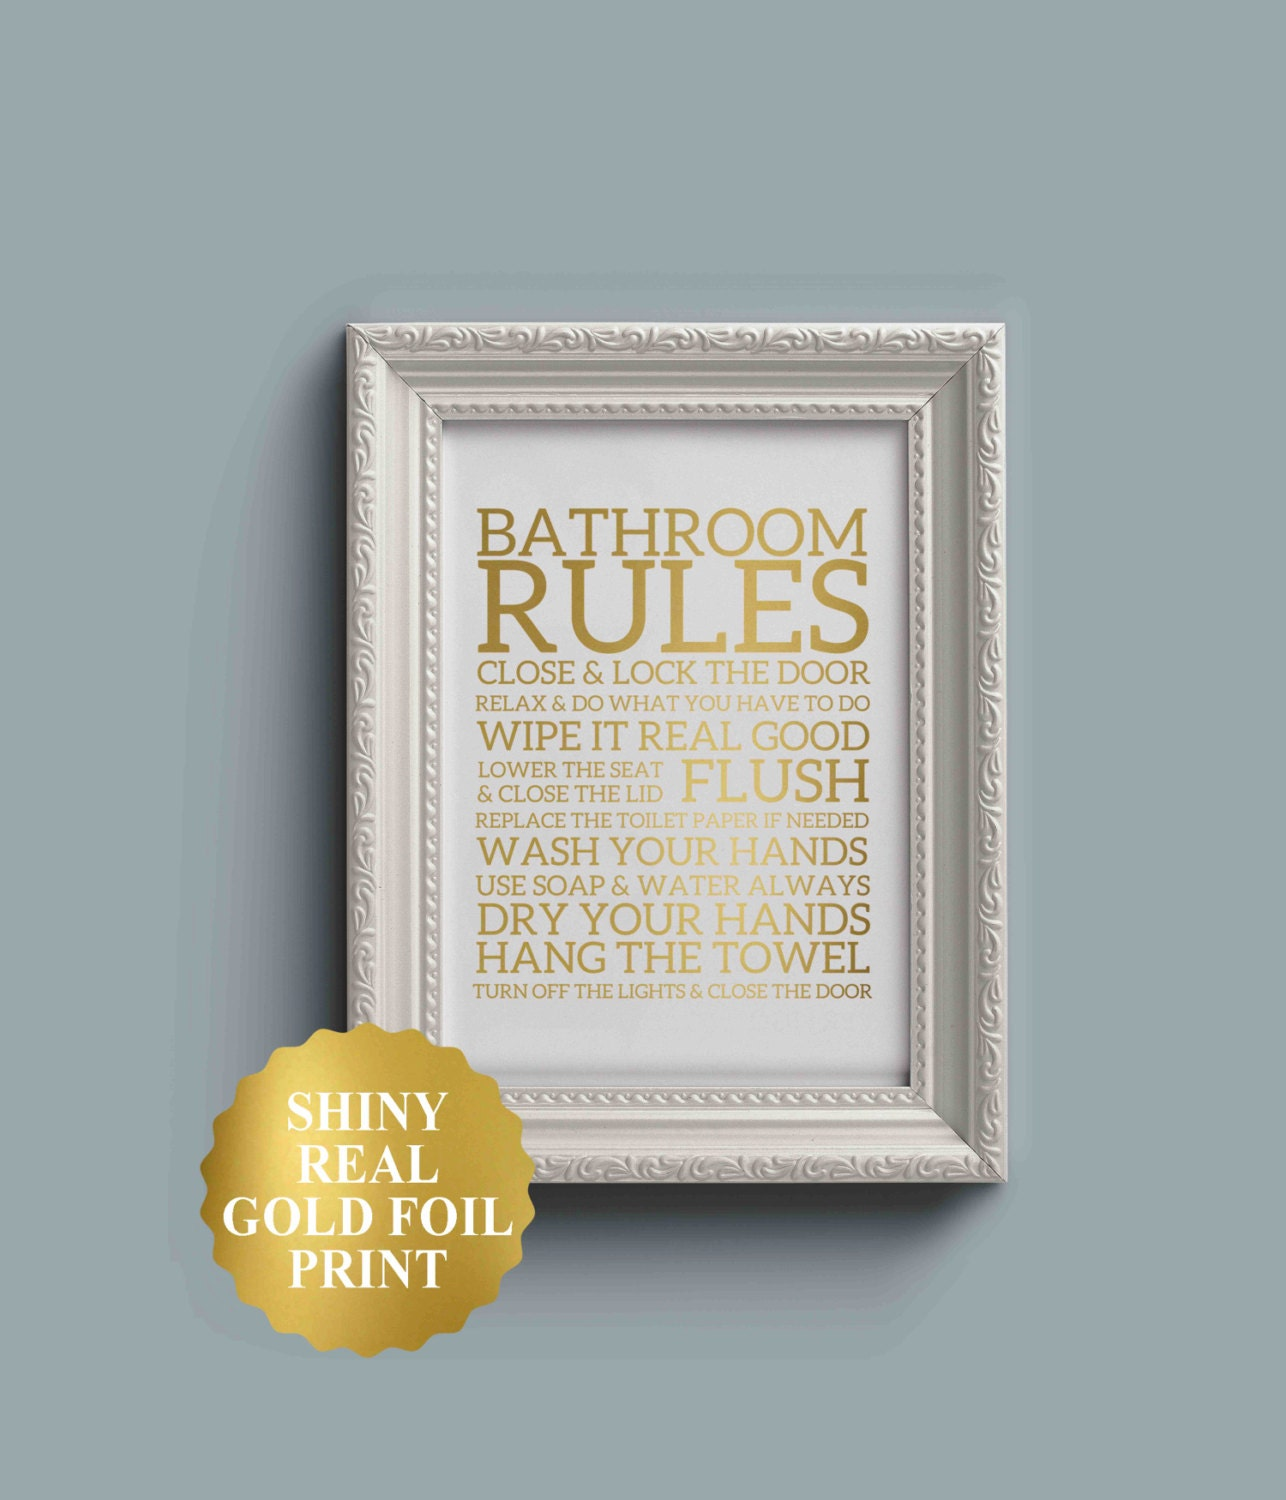 Bathroom rules print bathroom wall decor gold foil bathroom for Bathroom decor rules